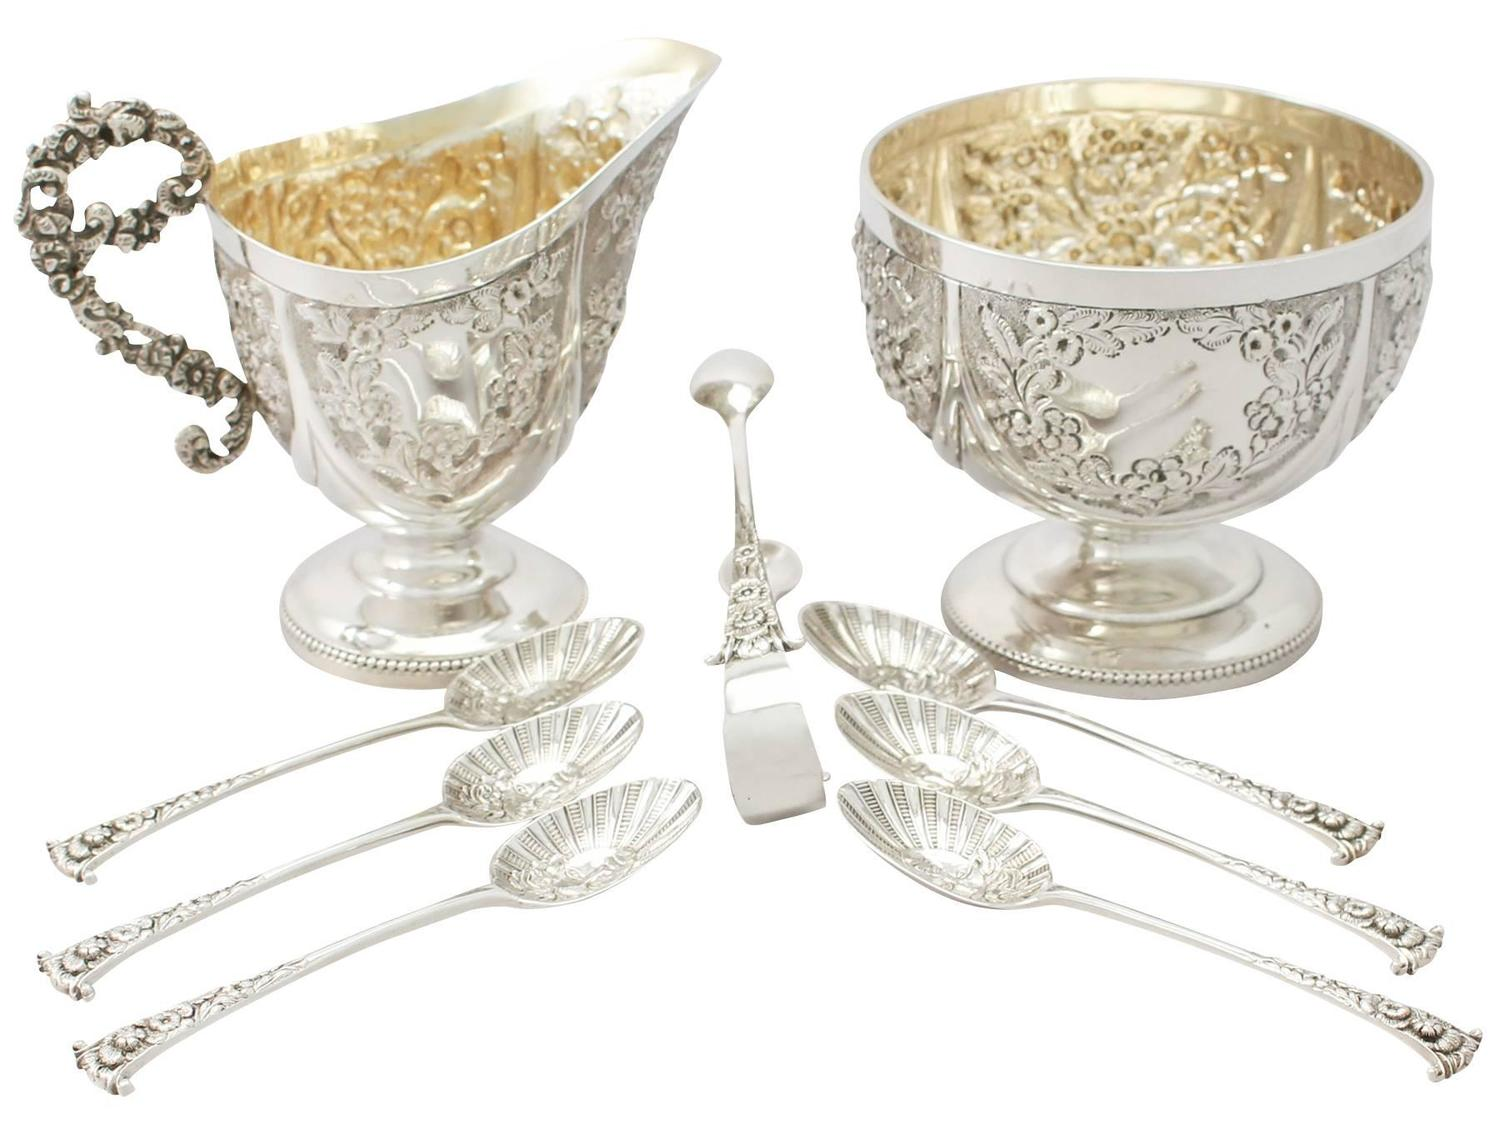 hair styles oval sterling silver and sugar presentation set boxed 6175